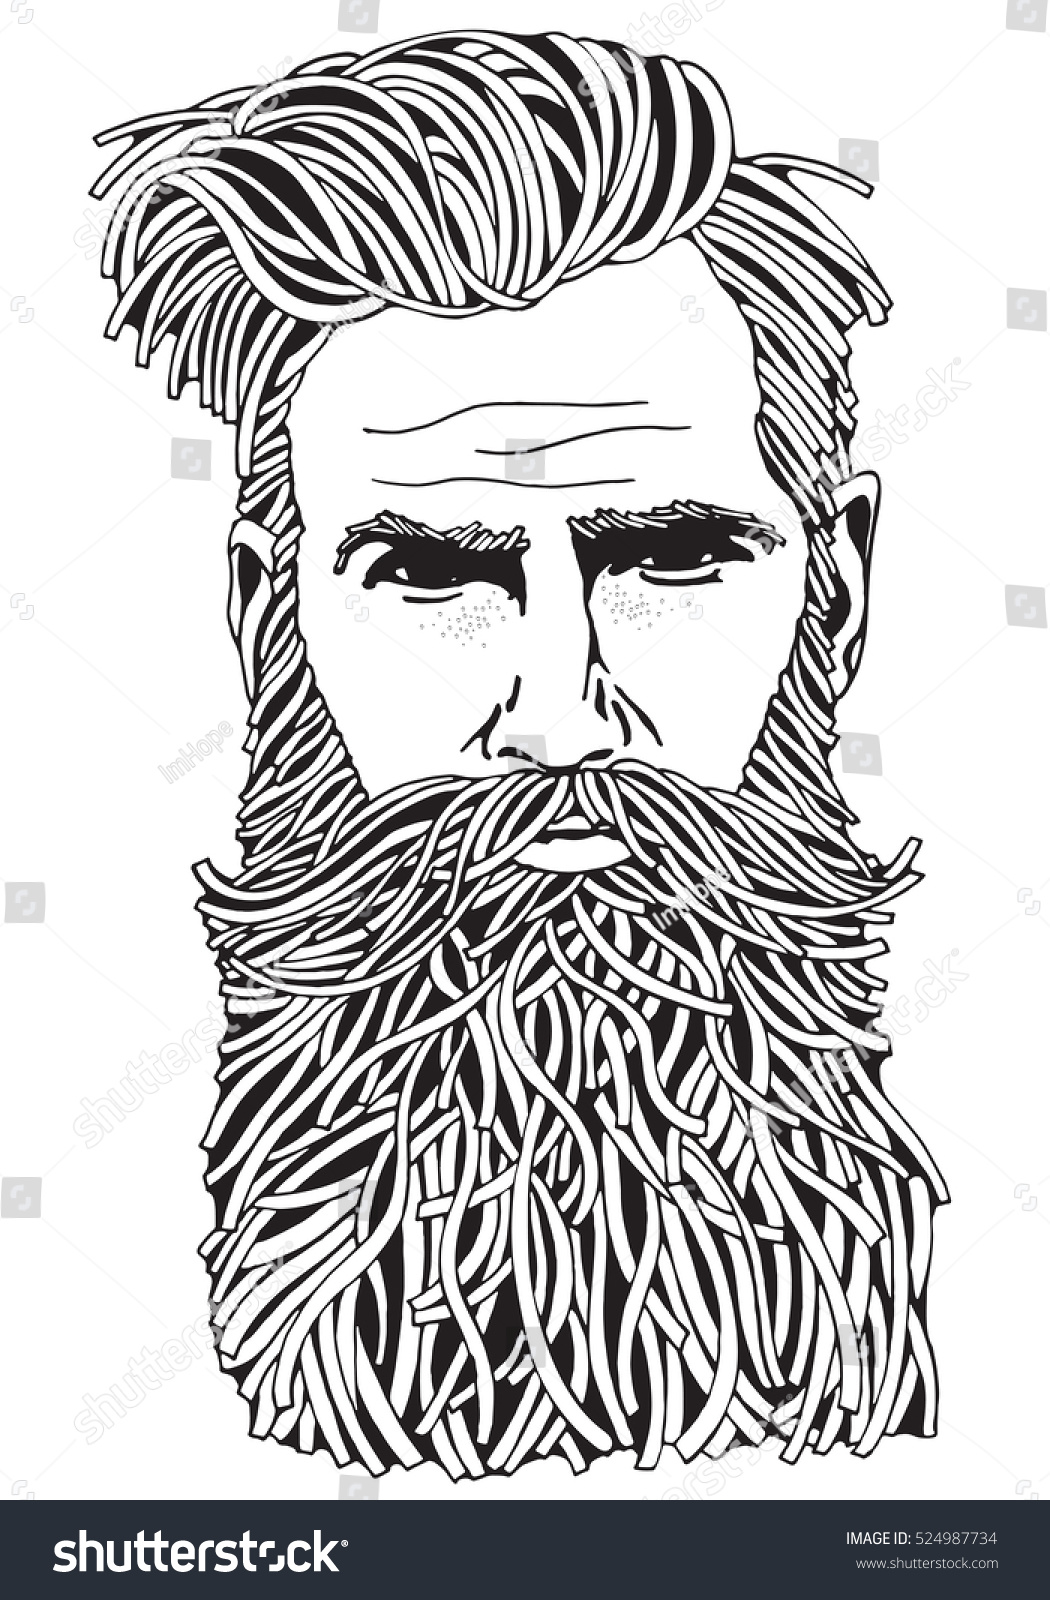 Bearded Hipster Man Coloring Book Page Stock Illustration